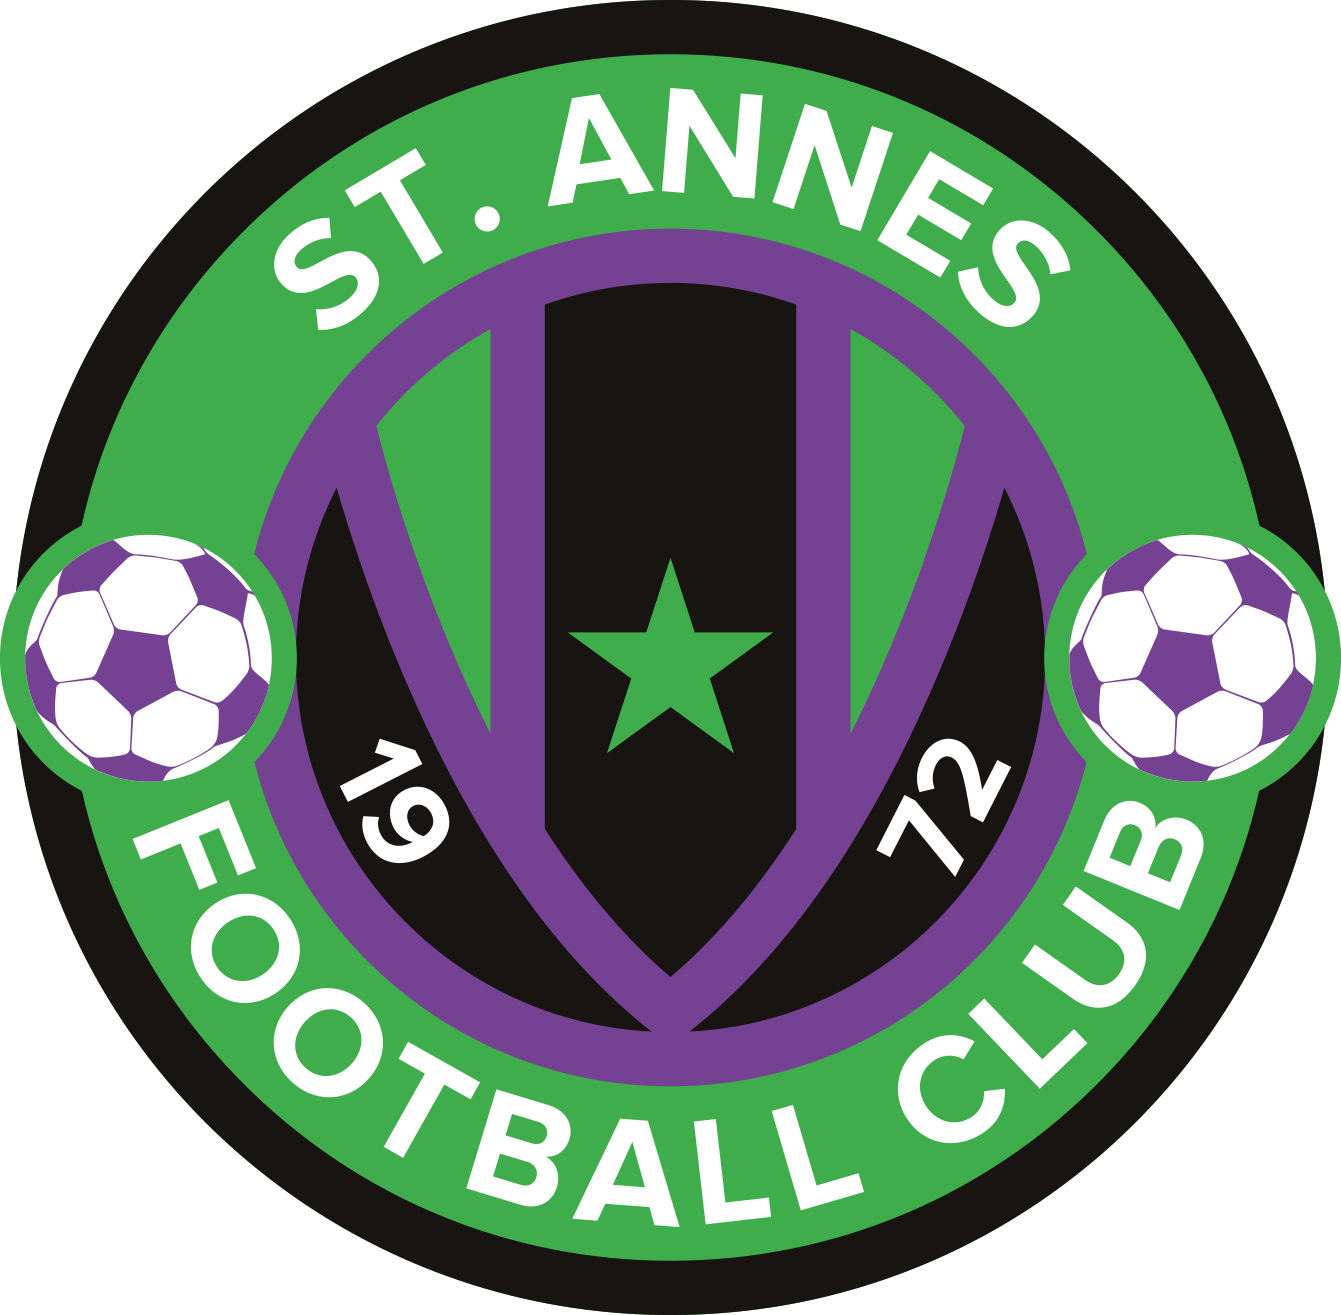 St. Annes Football Club